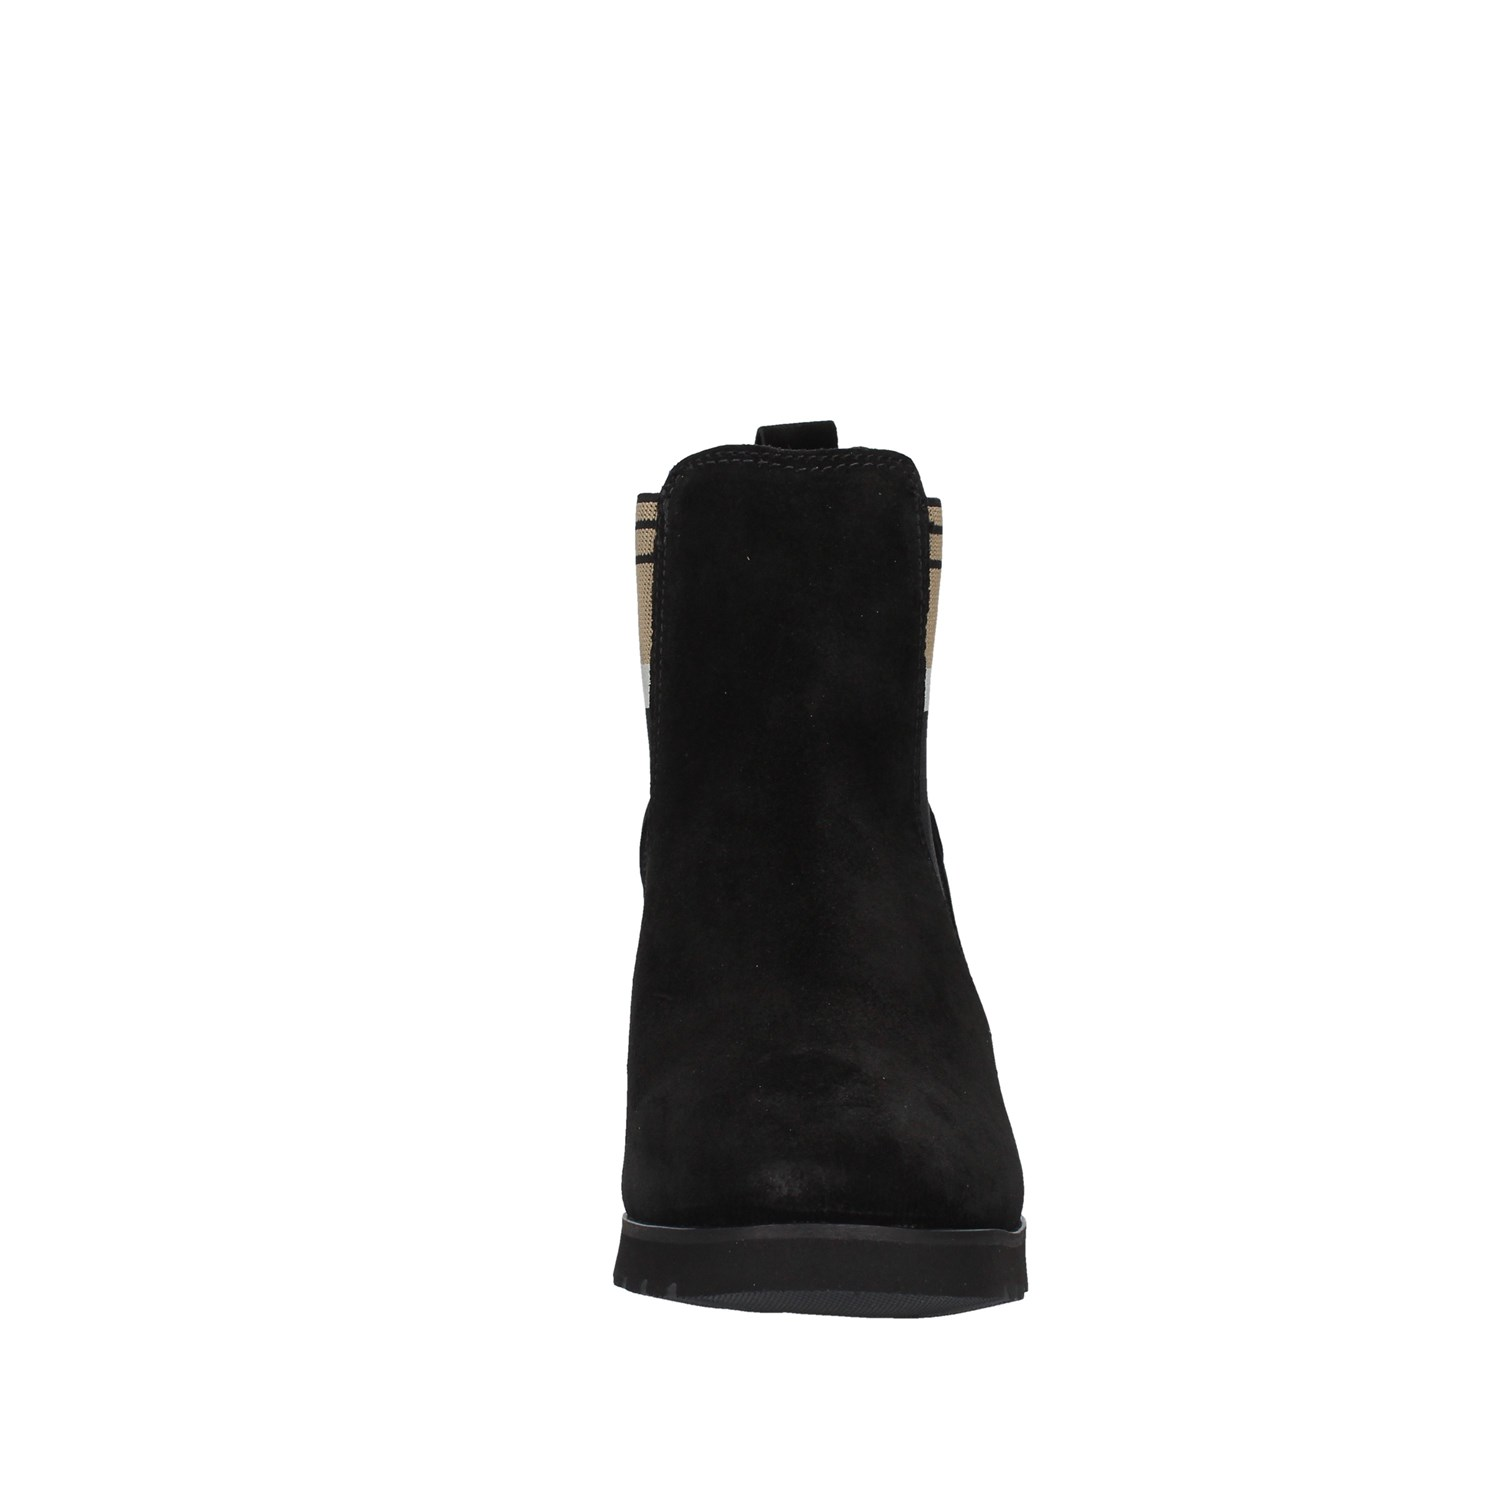 Callaghan Shoes Woman boots BLACK 25704